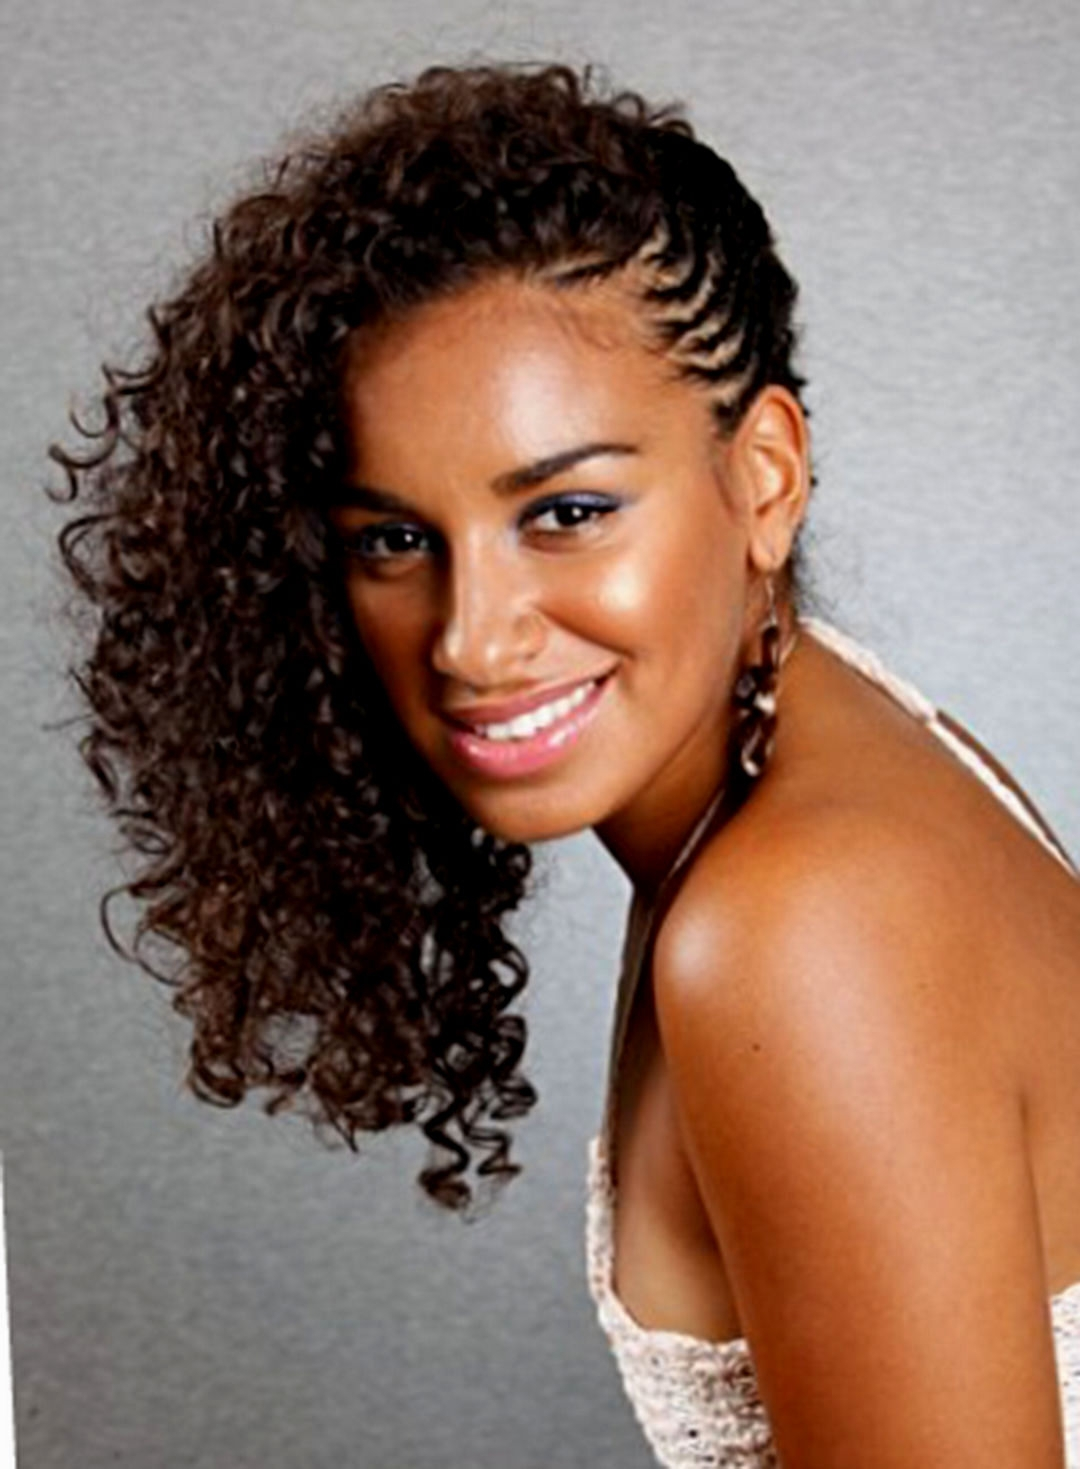 Current Braided Hairstyles For Naturally Curly Hair For Braided Hairstyles Naturally Curly Hair Easy Of Curly Braiding (View 5 of 15)